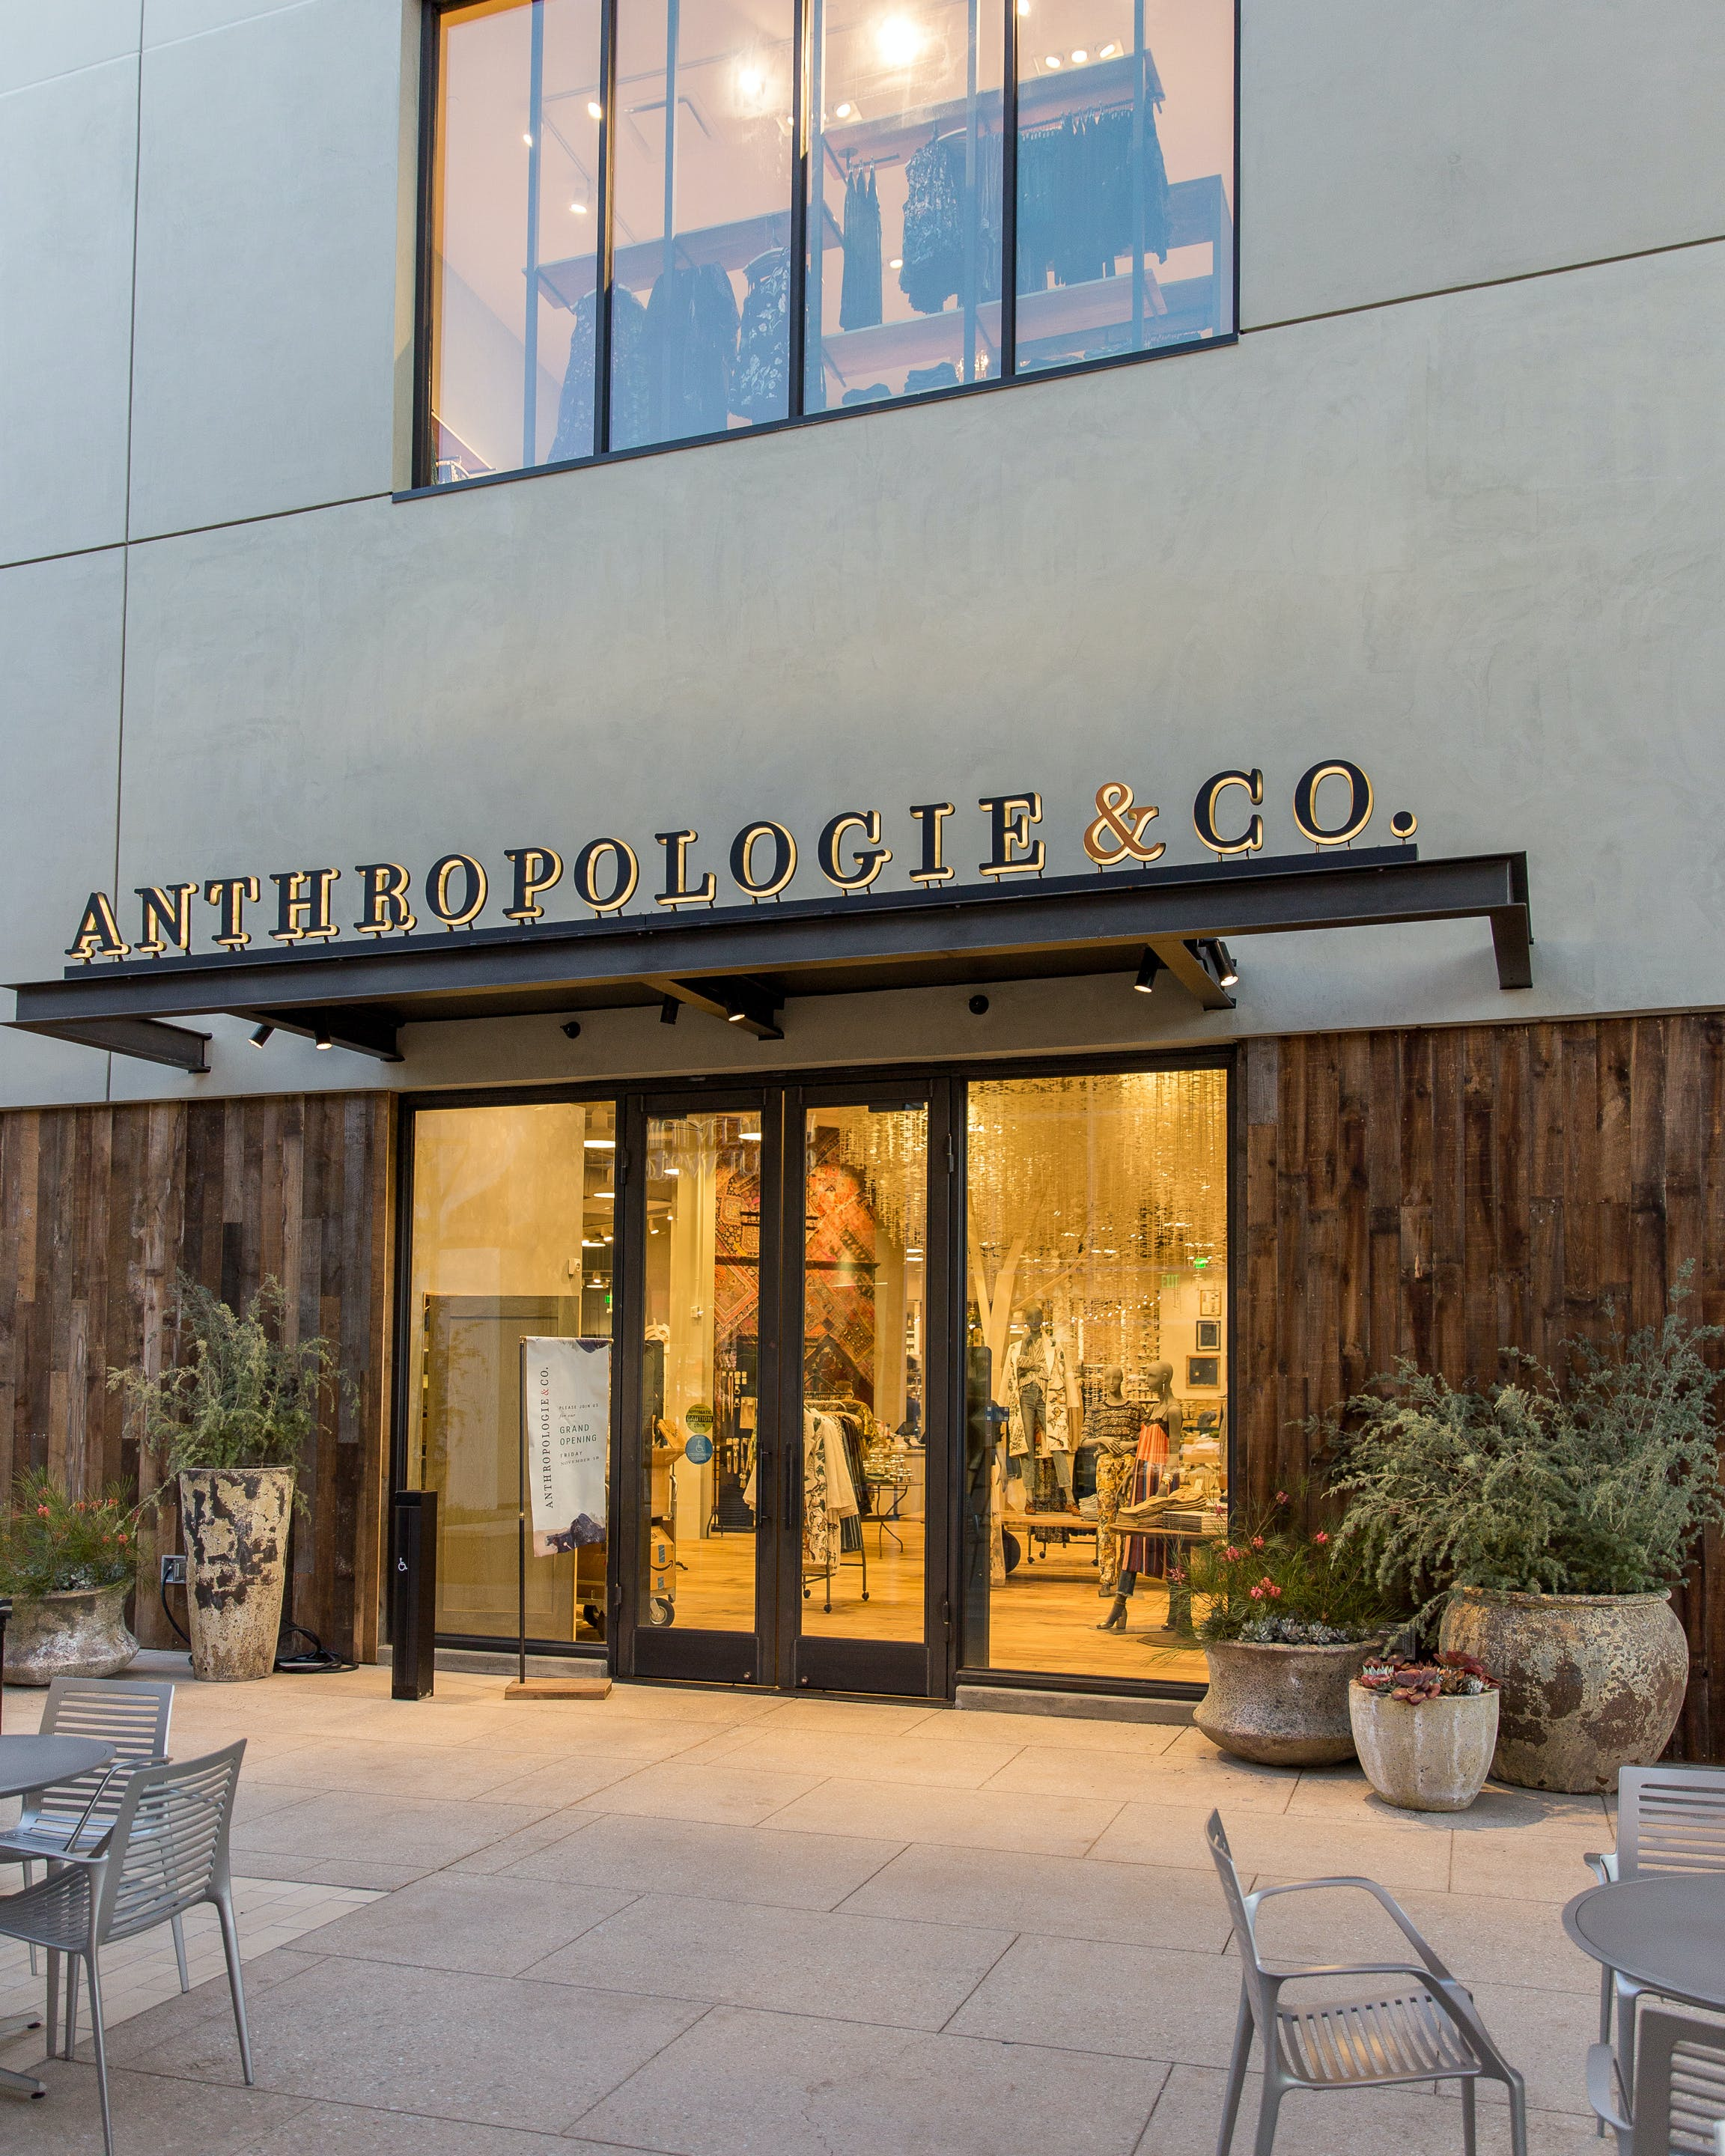 https://purewows3.imgix.net/images/articles/2017_01/000_Anthropologie___Co._Palo_Alto_Exterior.jpg?auto=format,compress&cs=strip